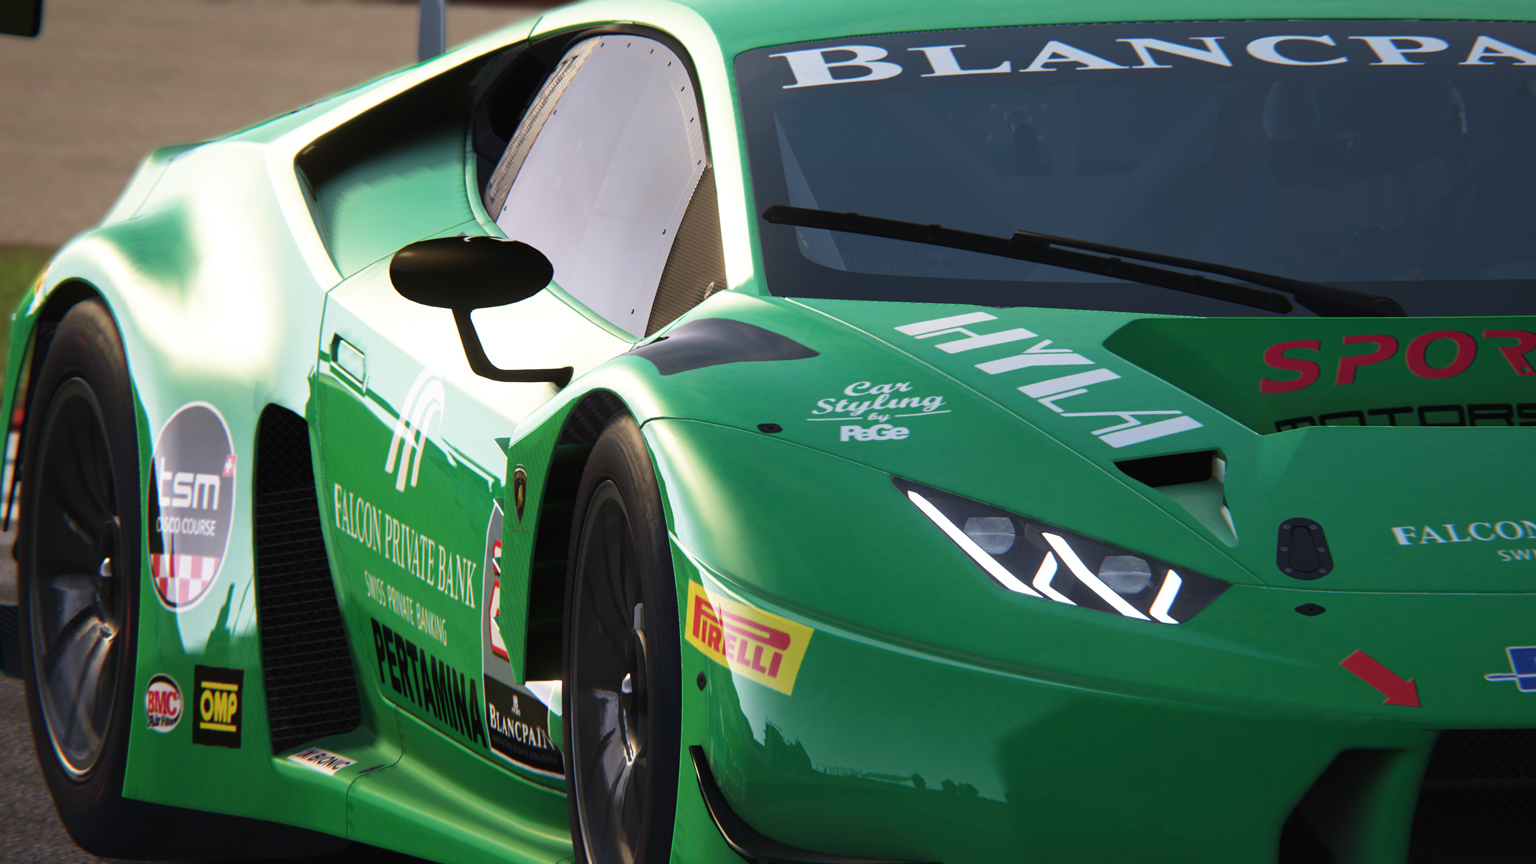 Screenshot_ks_lamborghini_huracan_gt3_silverstone-international_4-11-115-1-12-42.jpg